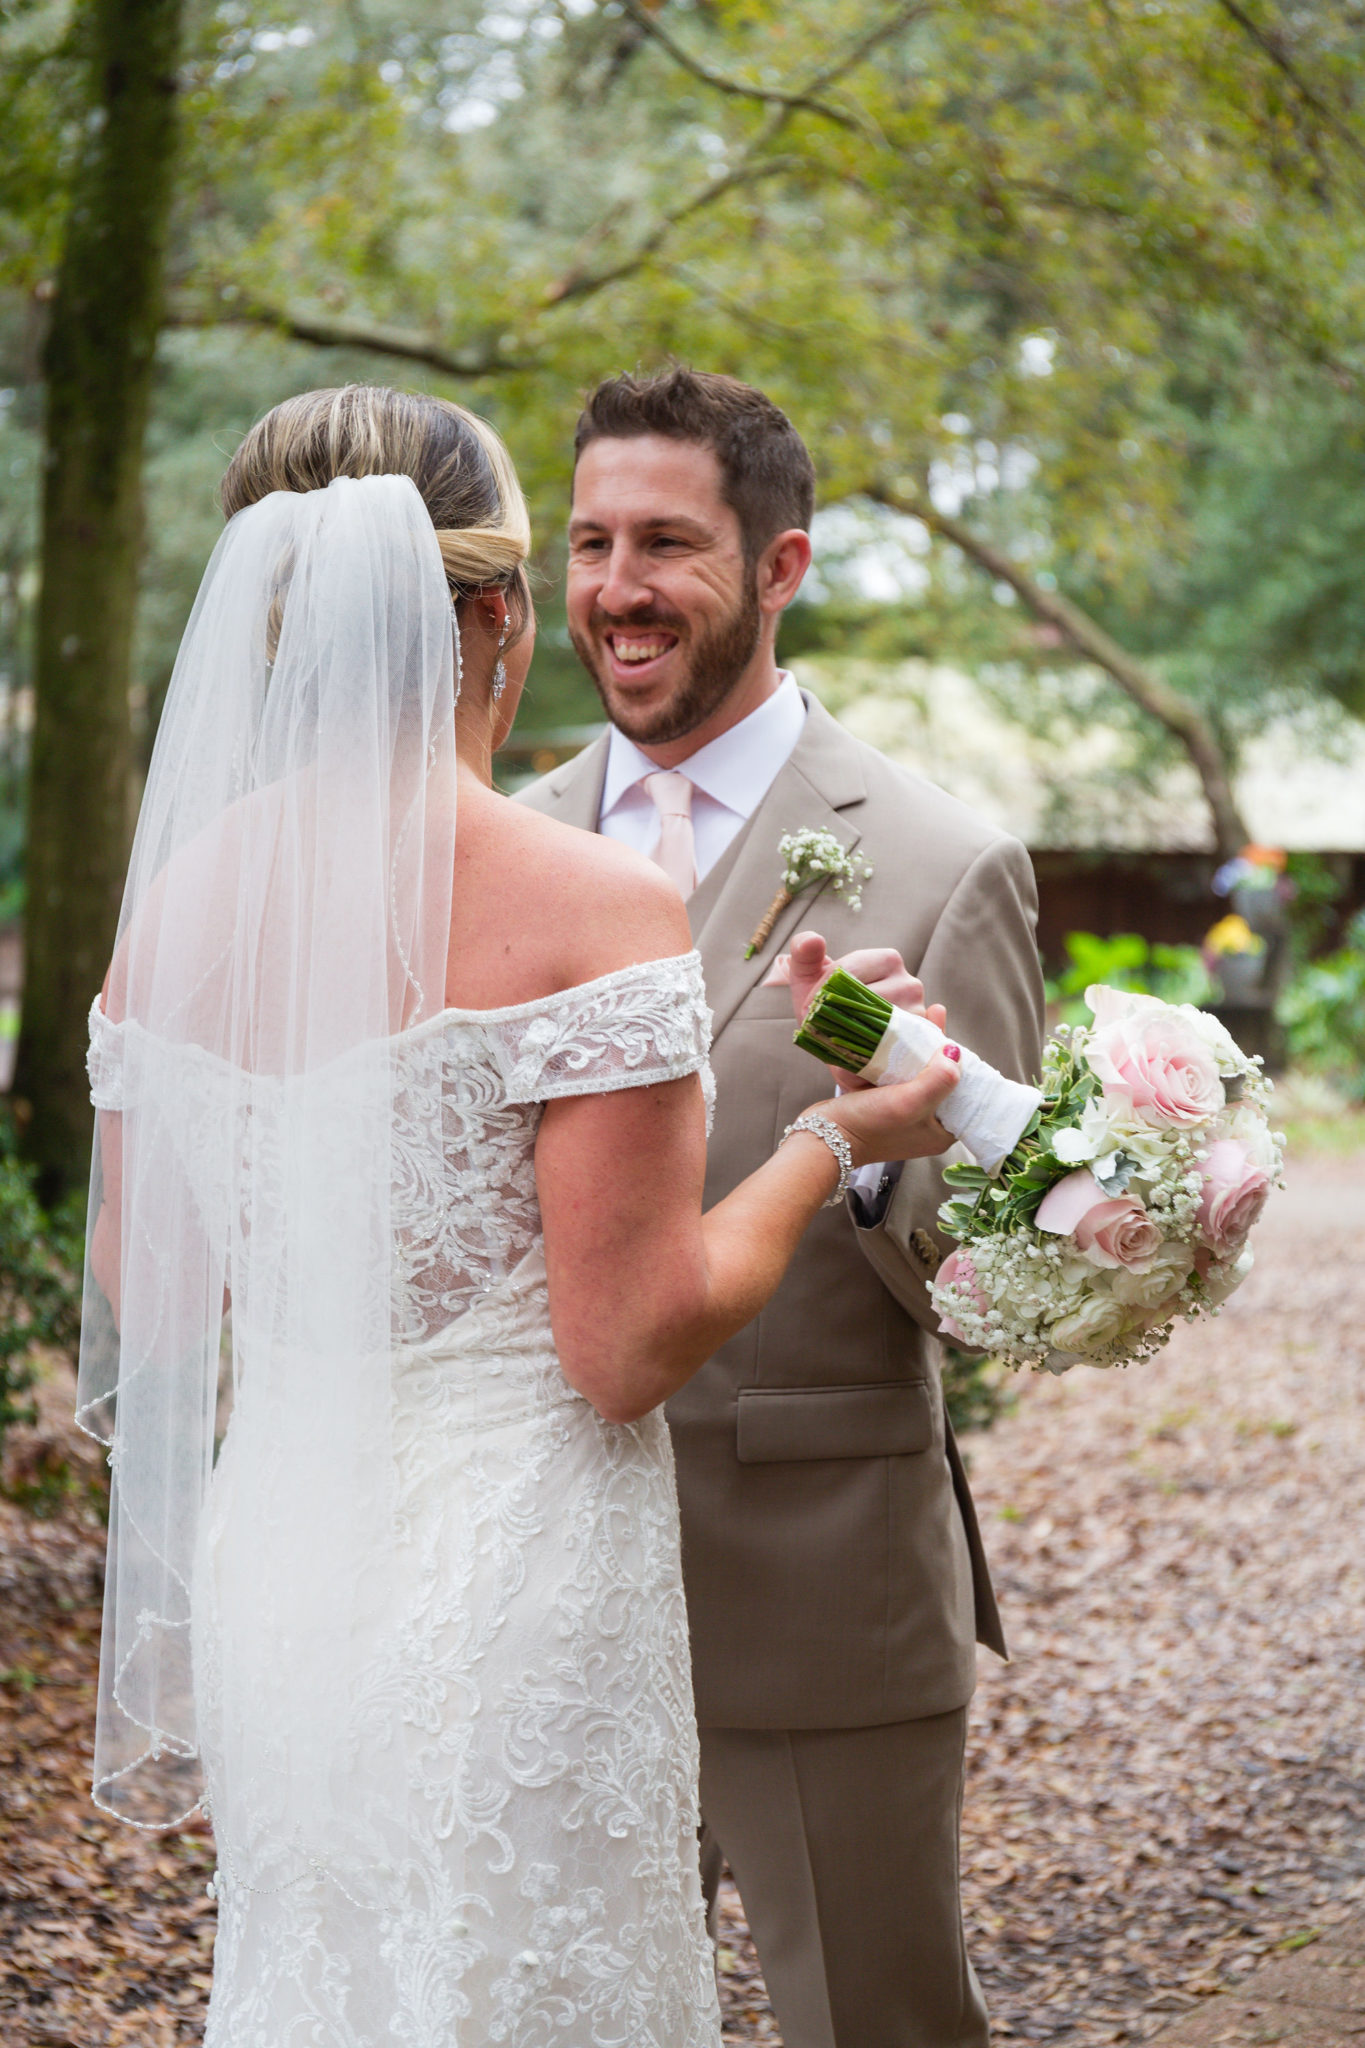 Look at that smile on the groom's face at their first look!